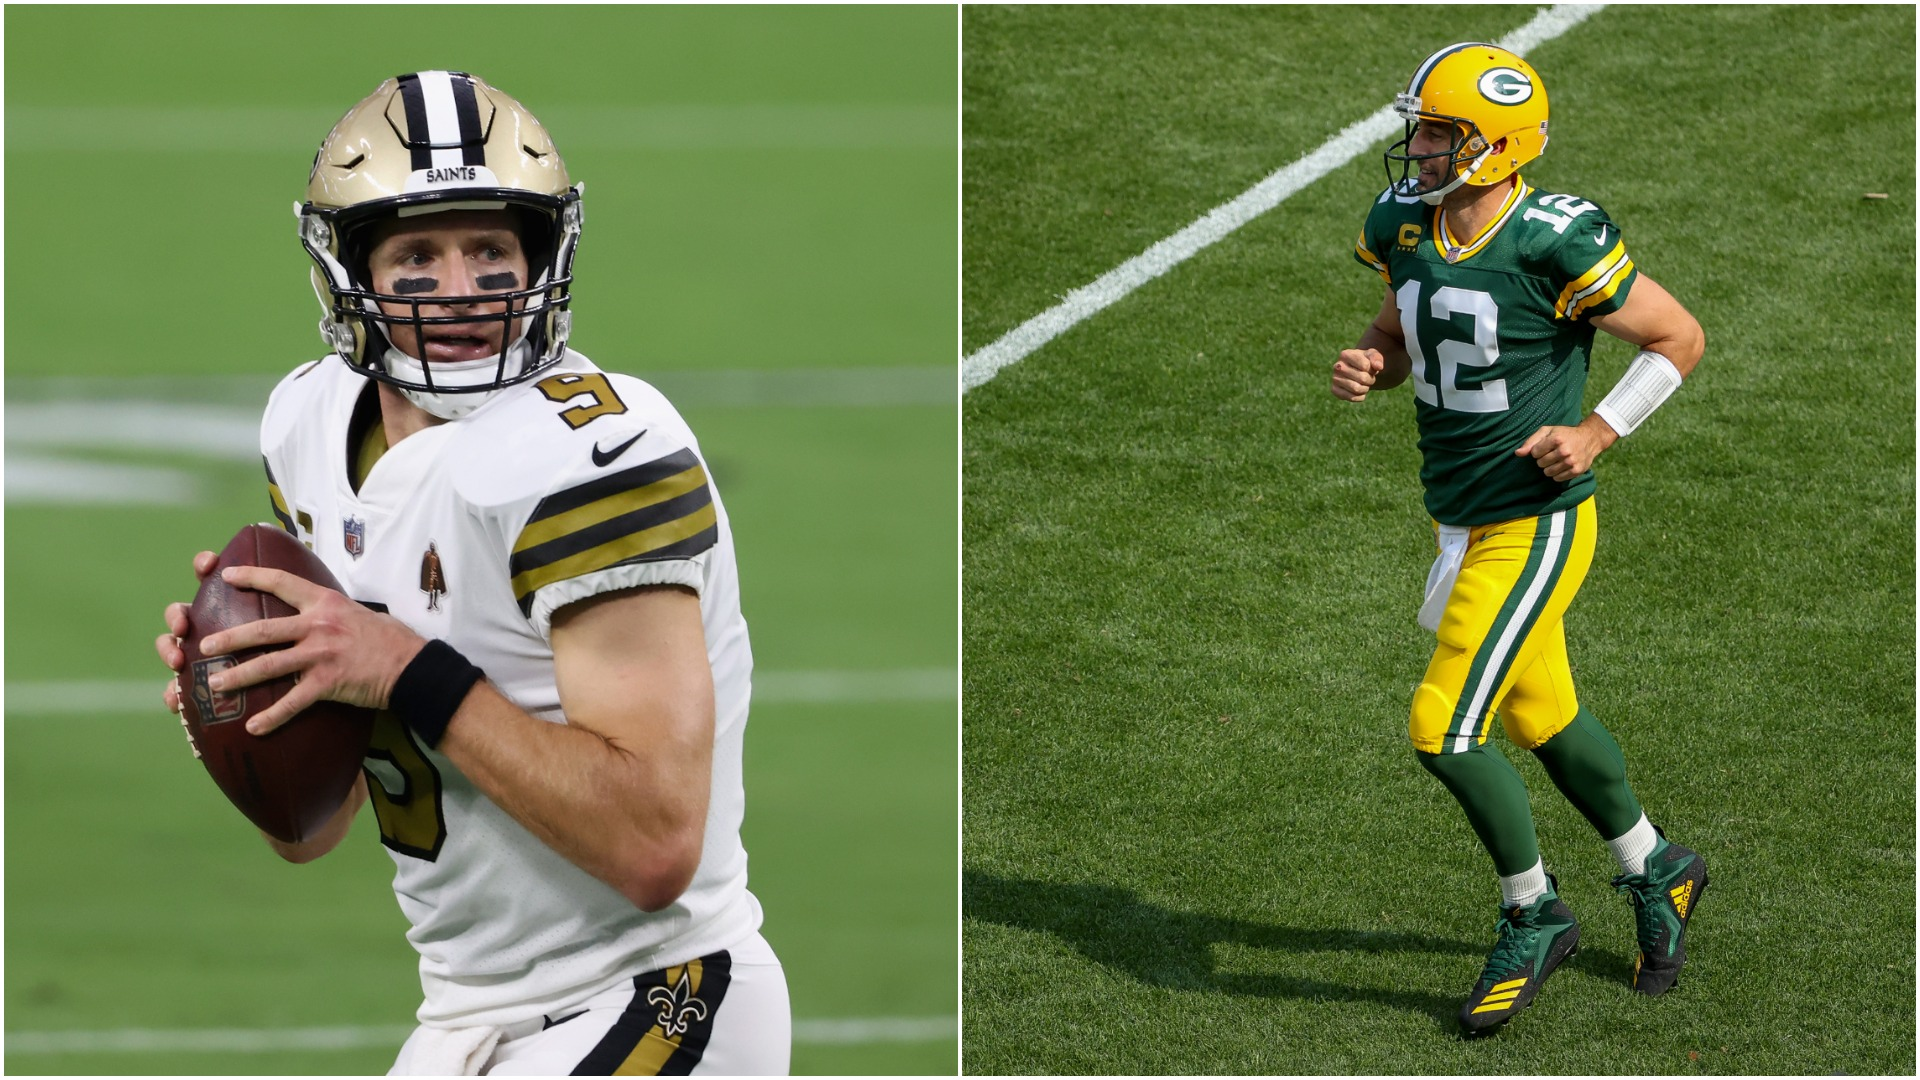 Both Aaron Rodgers and Drew Brees have had impressive NFL careers. Which quarterback has the larger net worth?